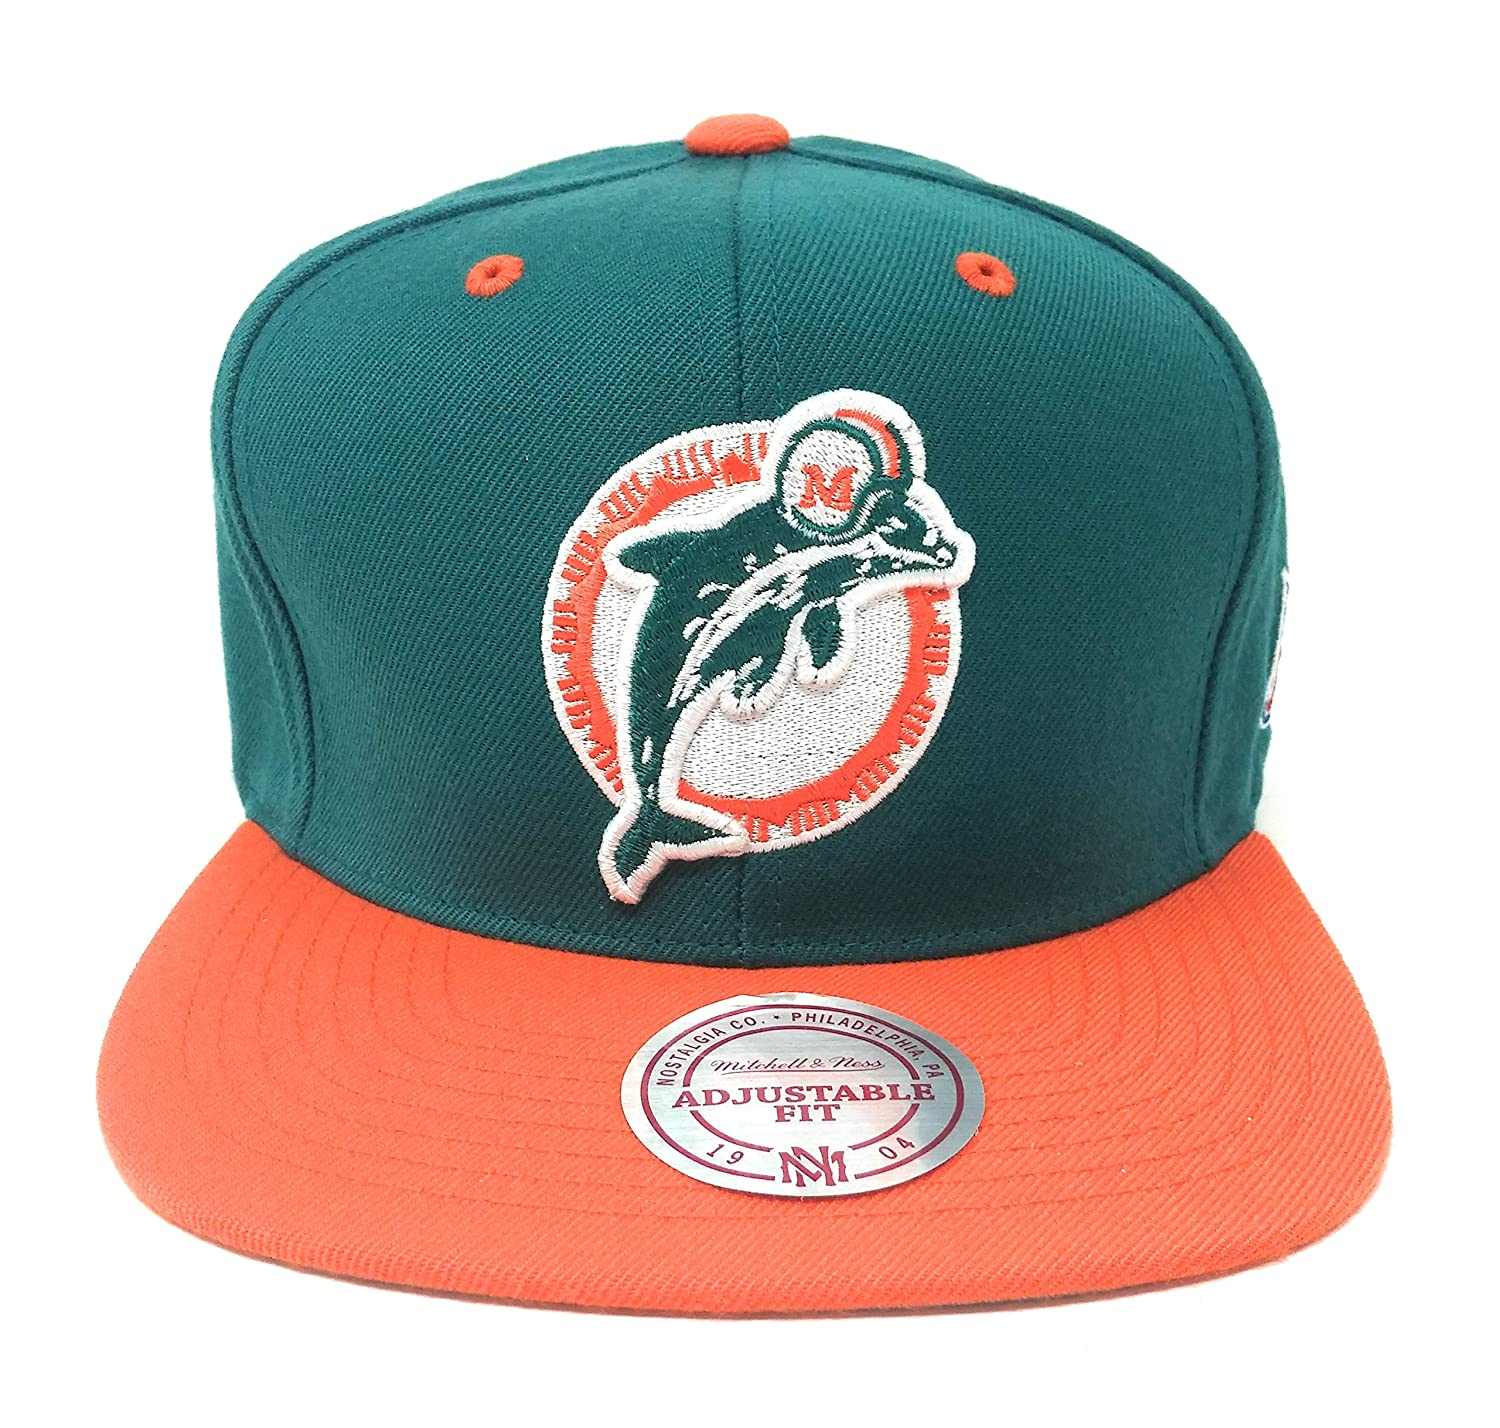 9c4937b6 Amazon.com : Mitchell And Ness Sta3 Retro Miami Dolphins Snapback ...